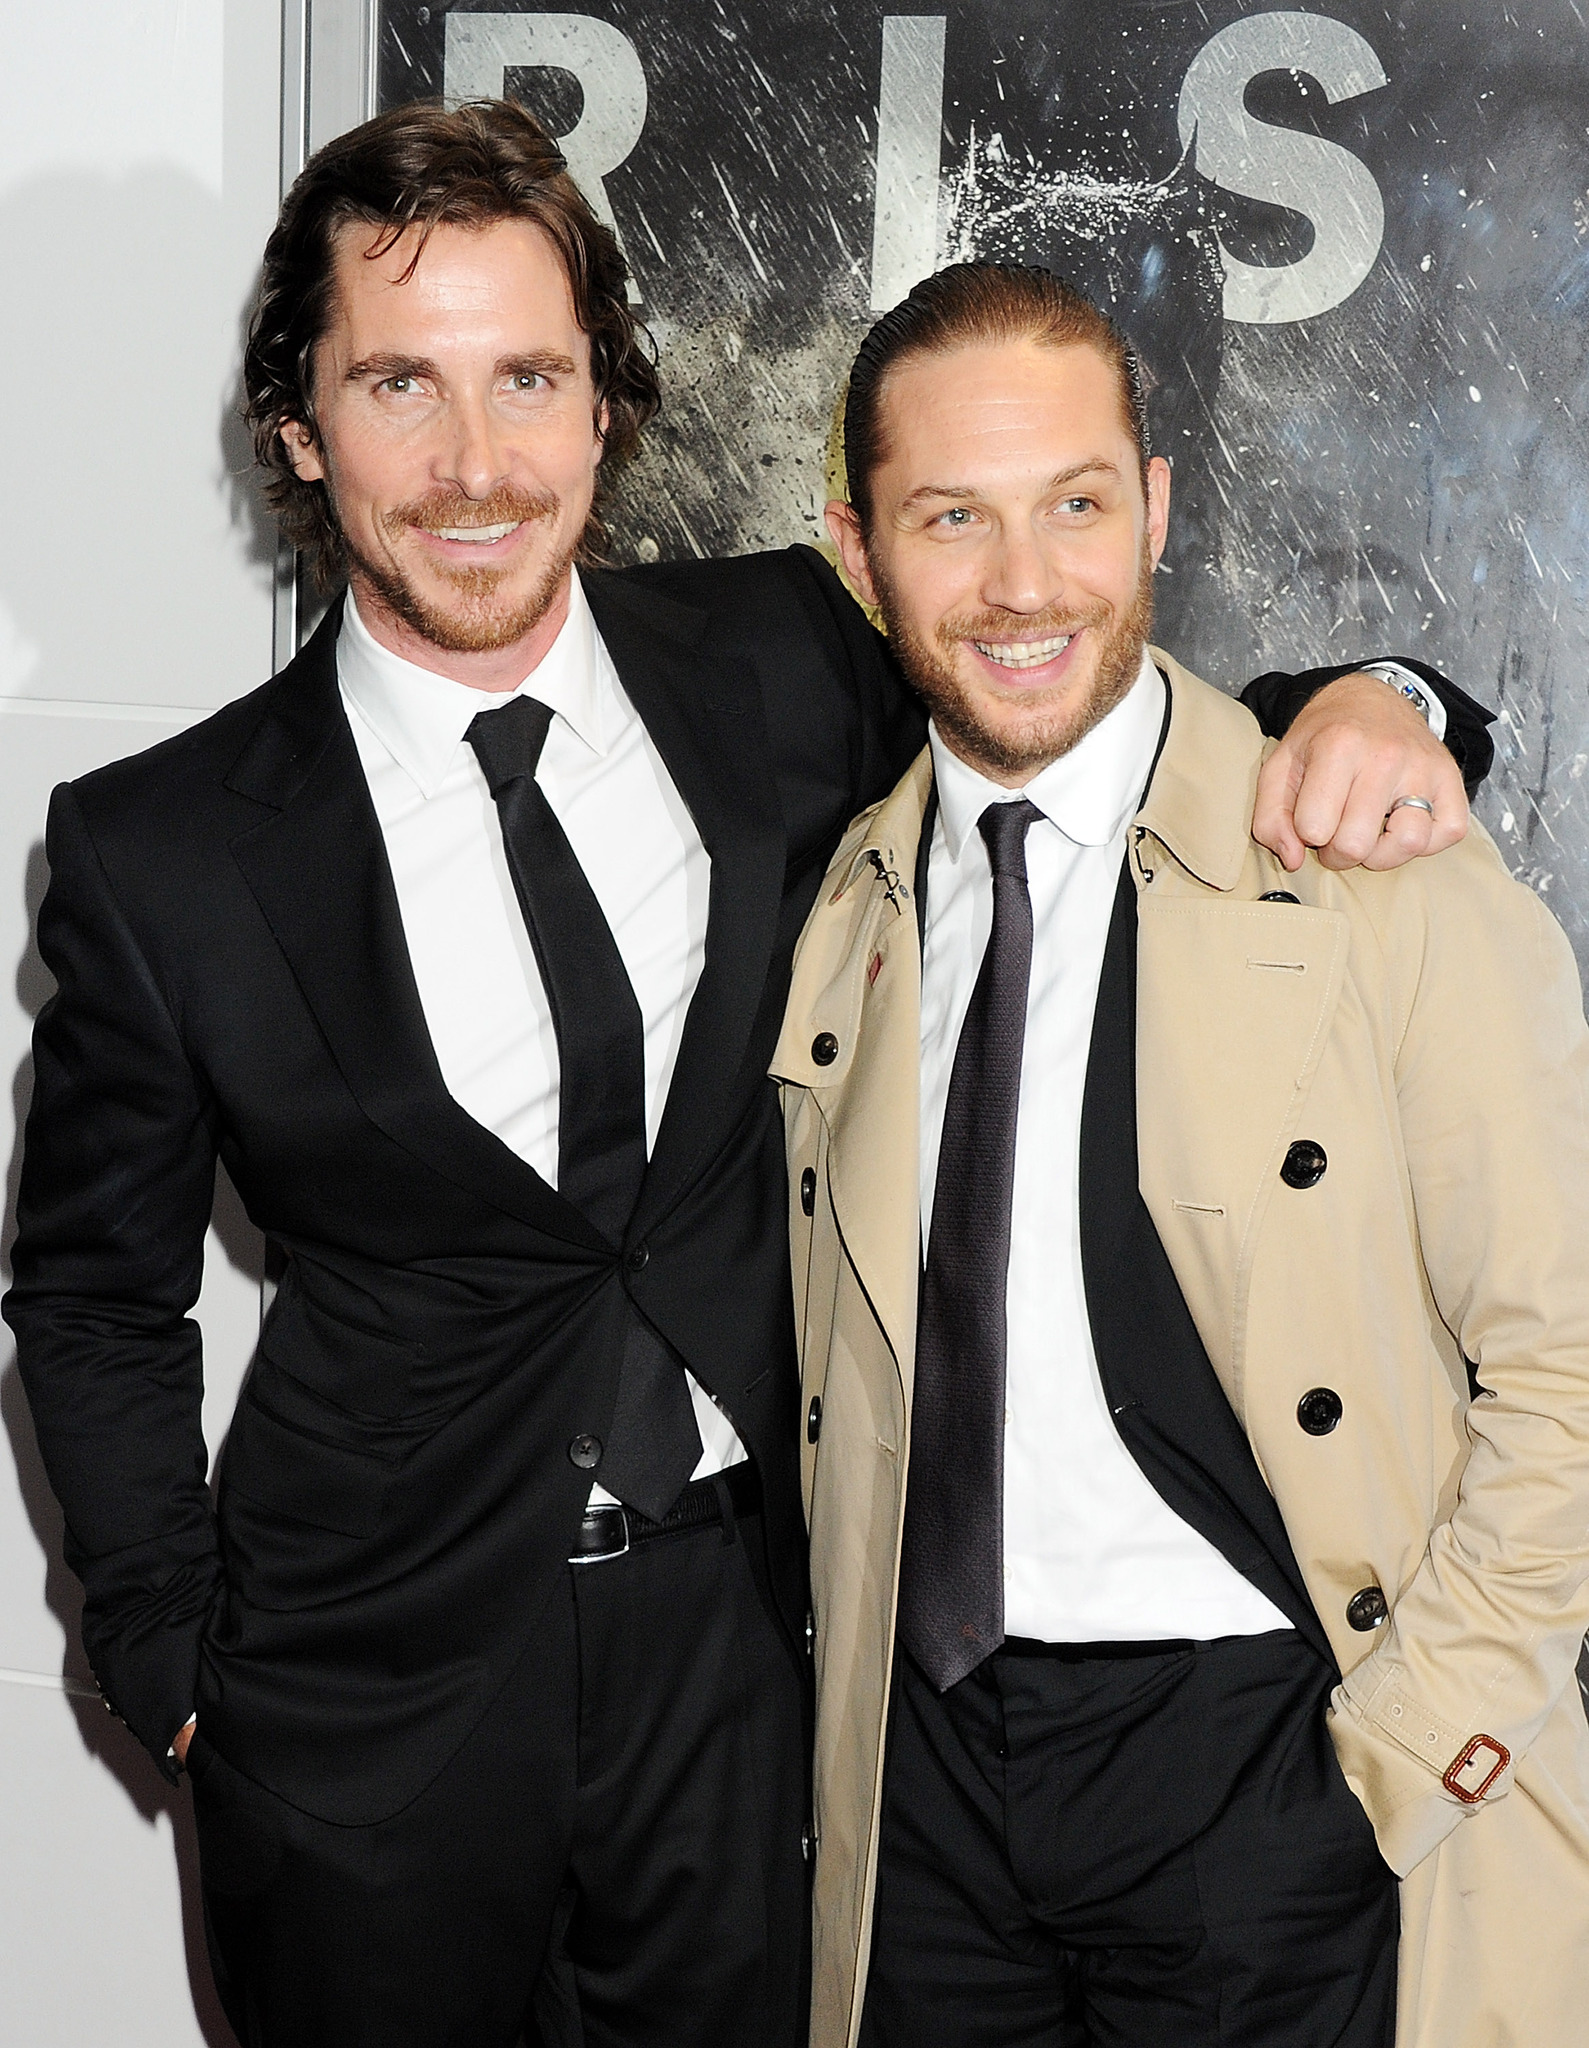 Christian Bale and Tom Hardy at an event for The Dark Knight Rises (2012)